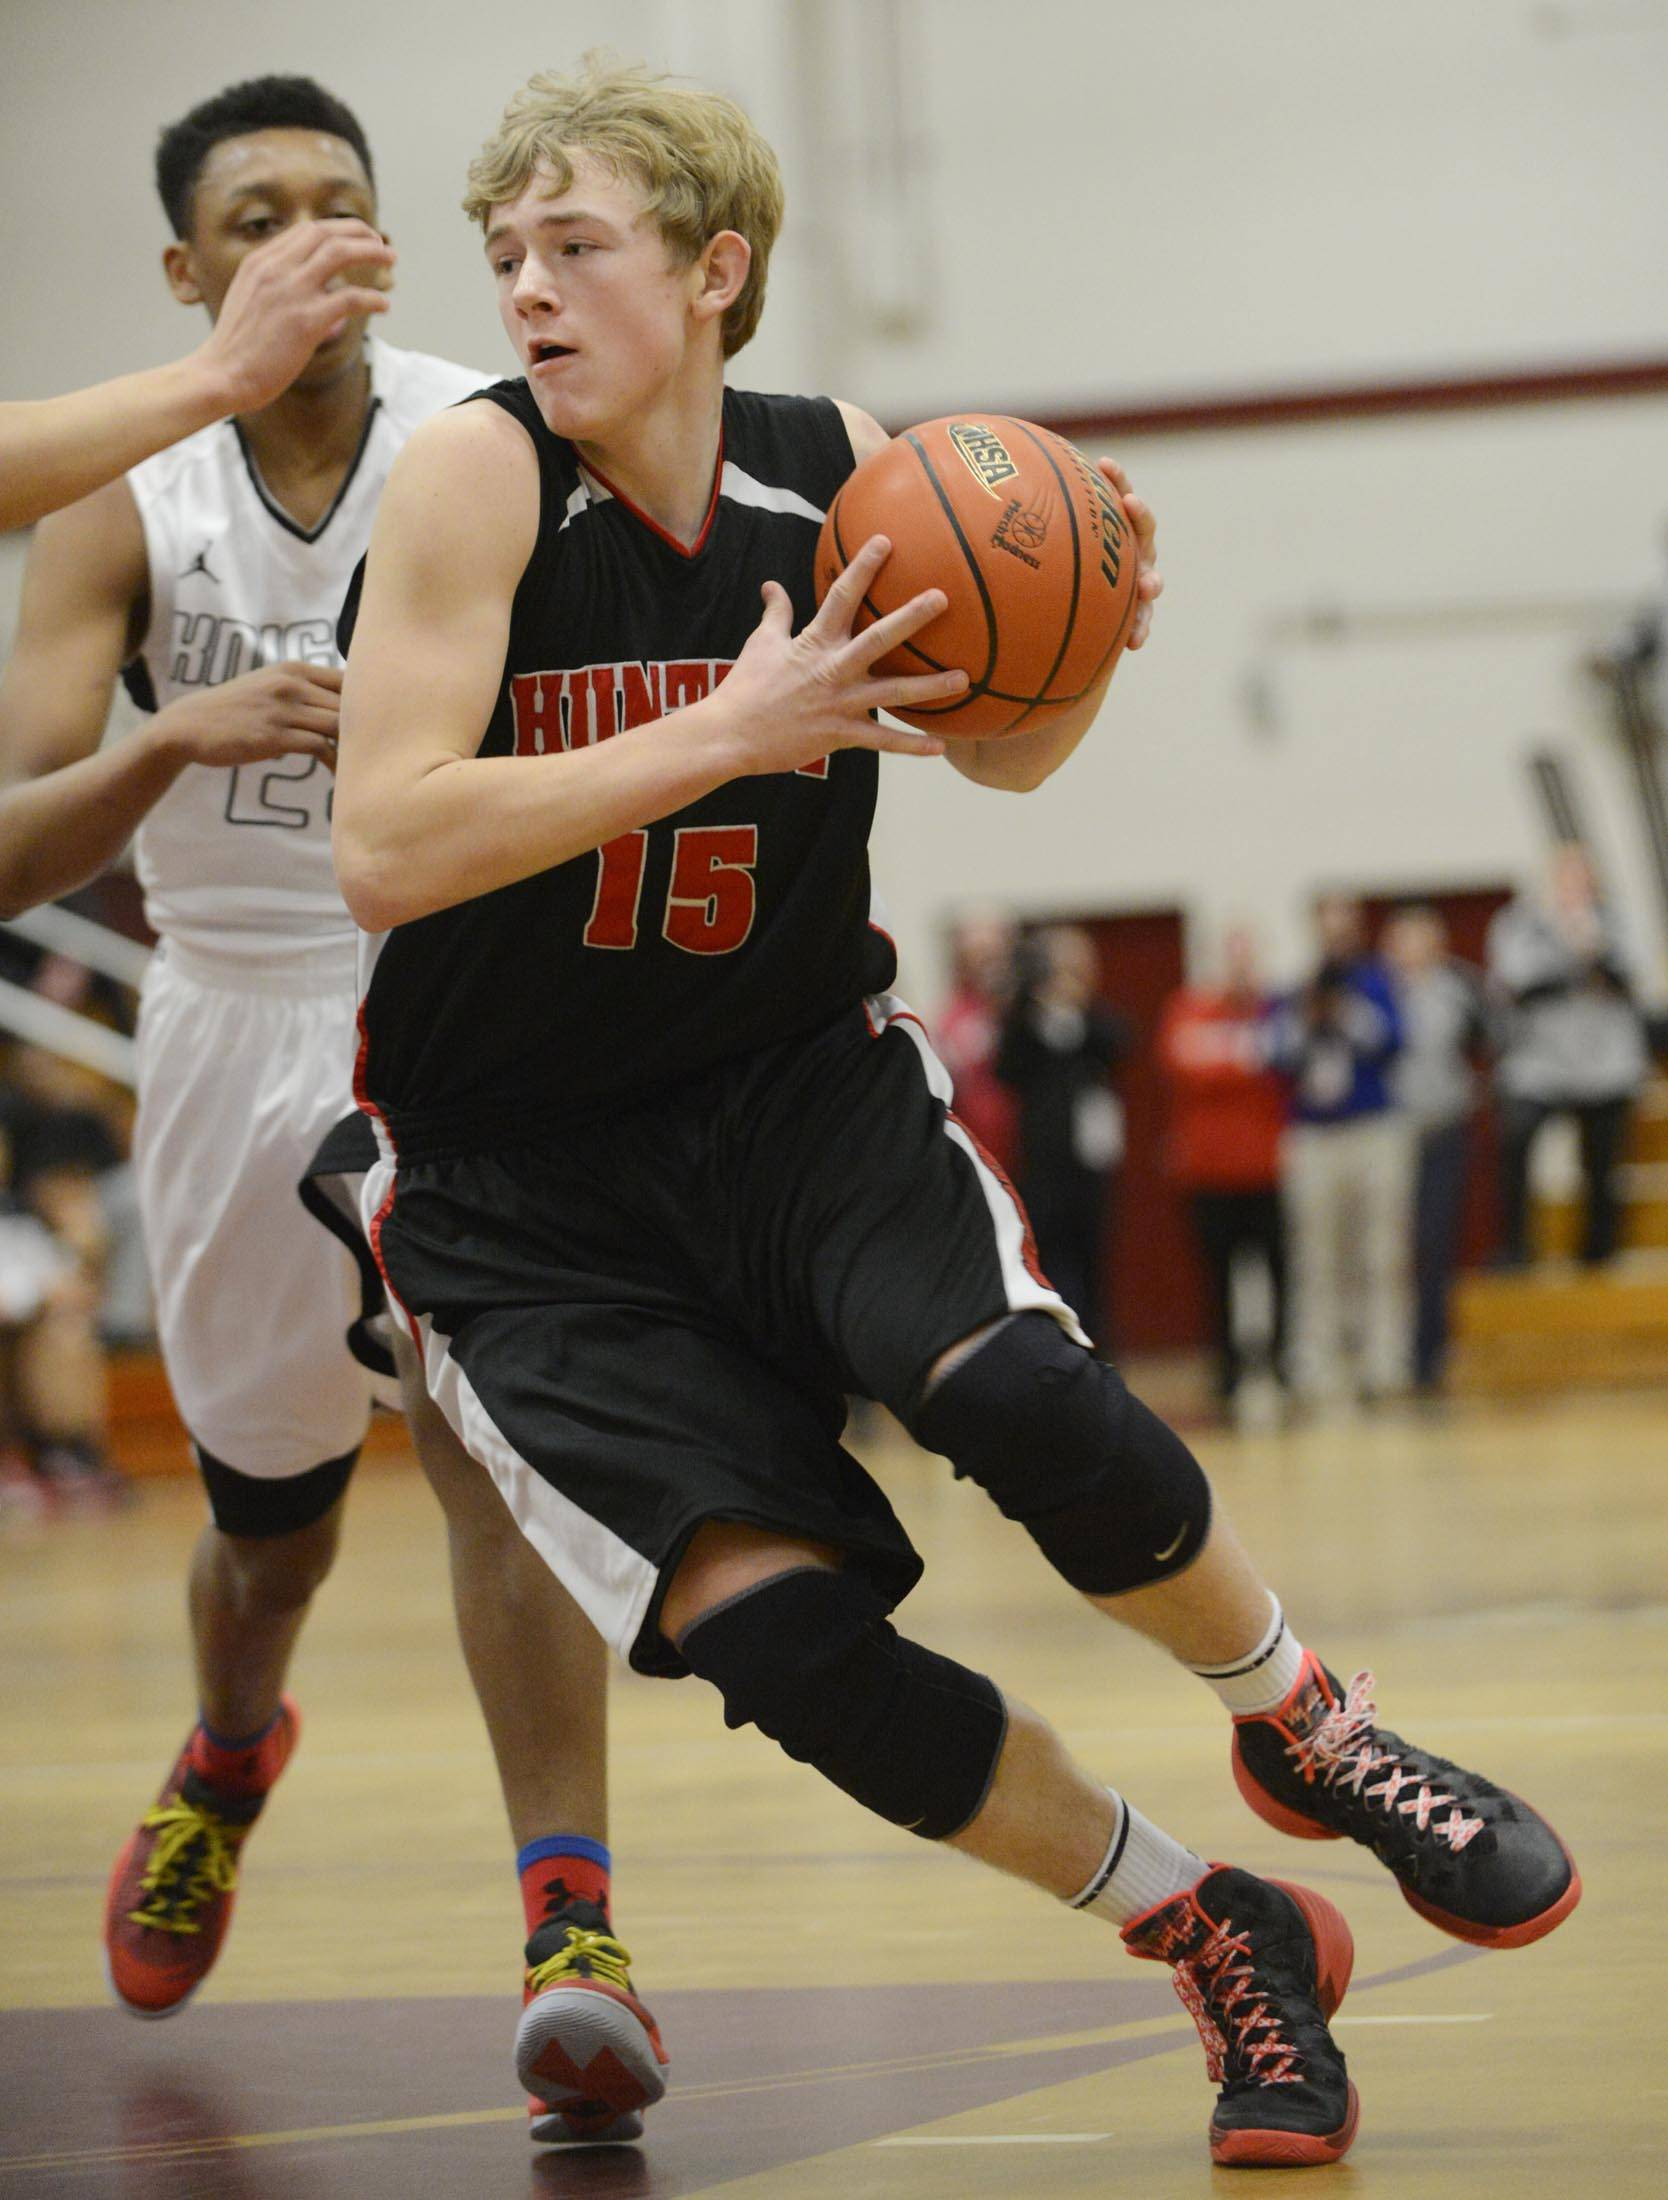 Images from the Huntley vs. Rockford Auburn boys sectional semifinal basketball game Tuesday, March 11, 2014 in Elgin.